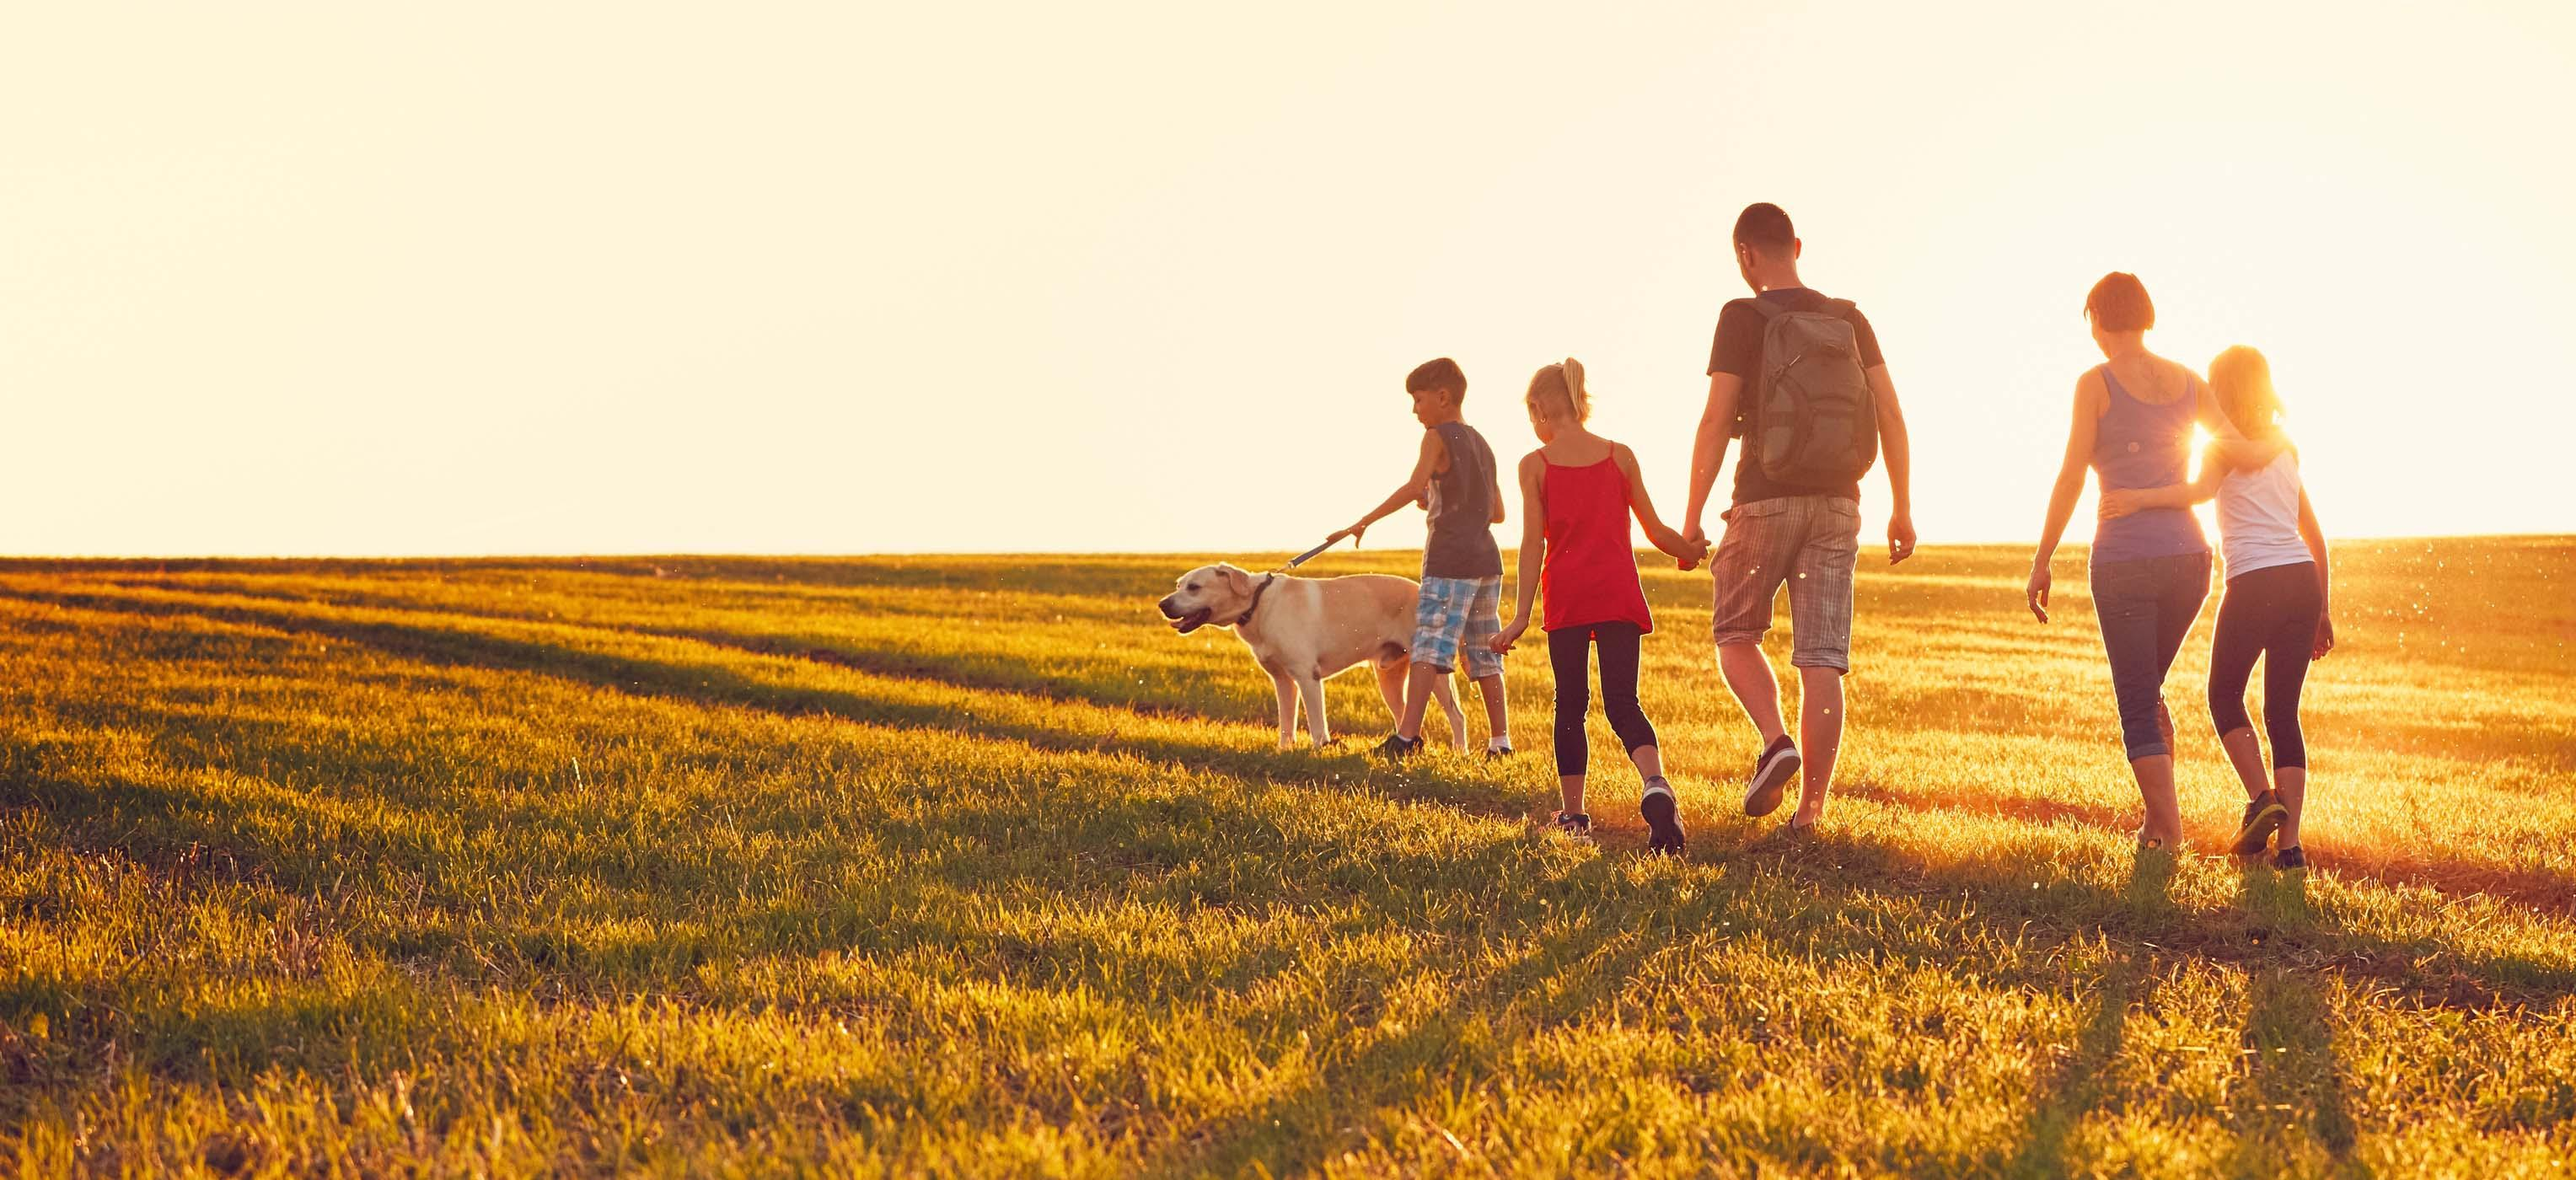 Life Insurance for Established Families